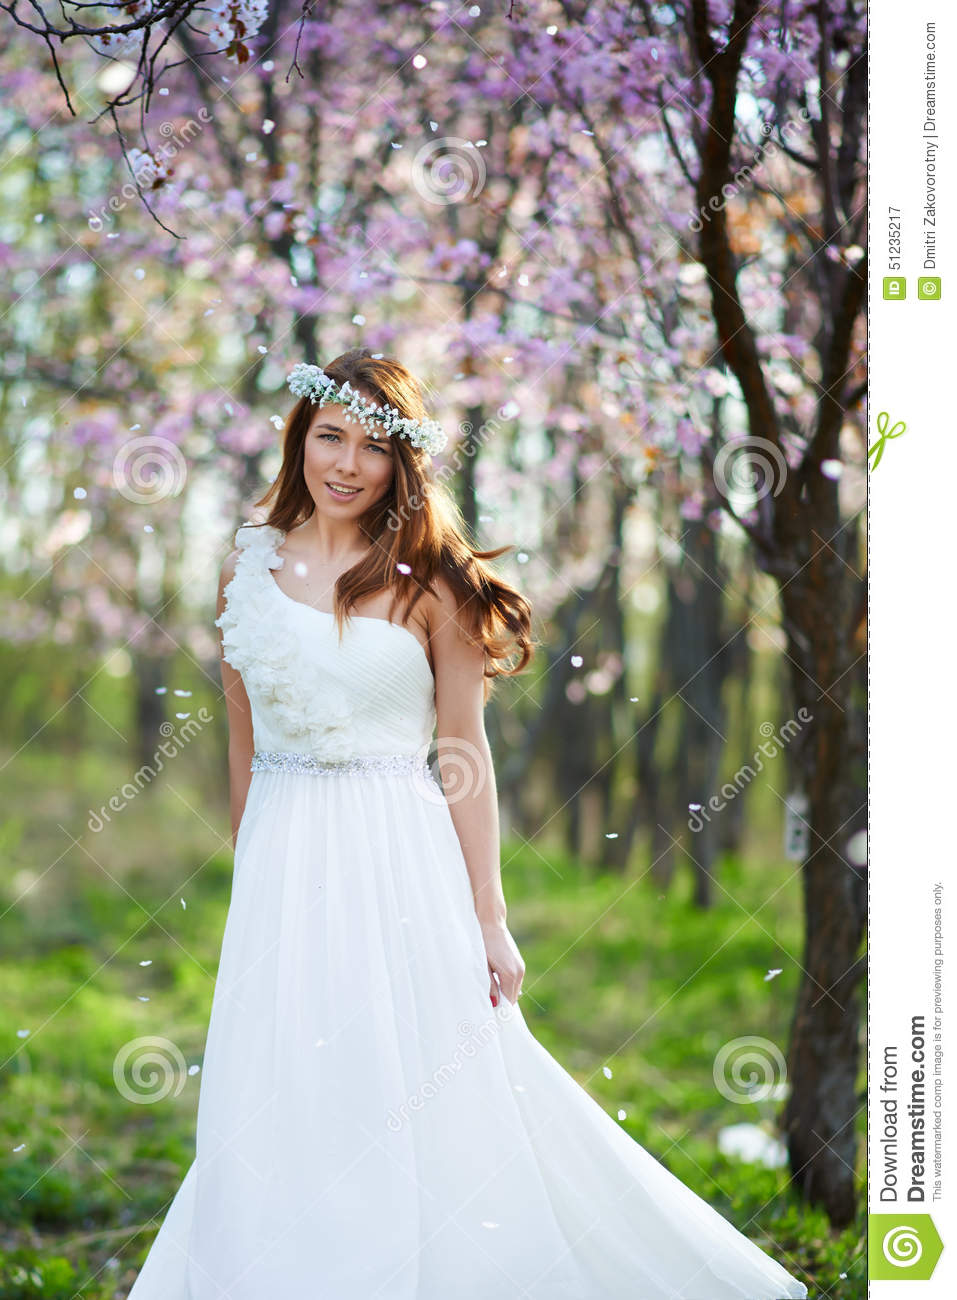 Bride To Spring Into Her 99